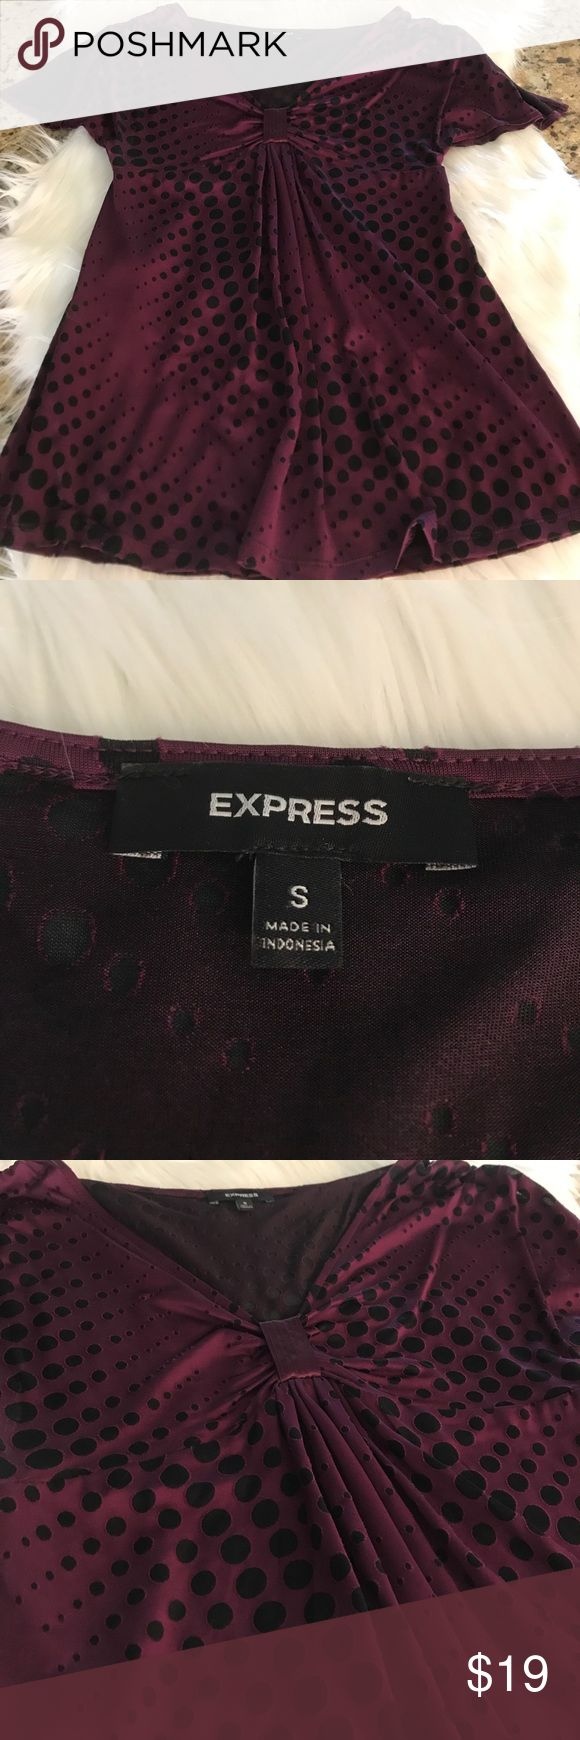 EXPRESS Size Small burgundy & black shirt. Perfect shirt for a day at the office or more dressed up to go out for happy hour! ☀️ This beautiful shirt is silky smooth as well as has a gorgeous deep purple color to it. The black part is see through so would need to be worn with a camisole underneath. I am open to alternative offers if interested! :) Express Tops Blouses